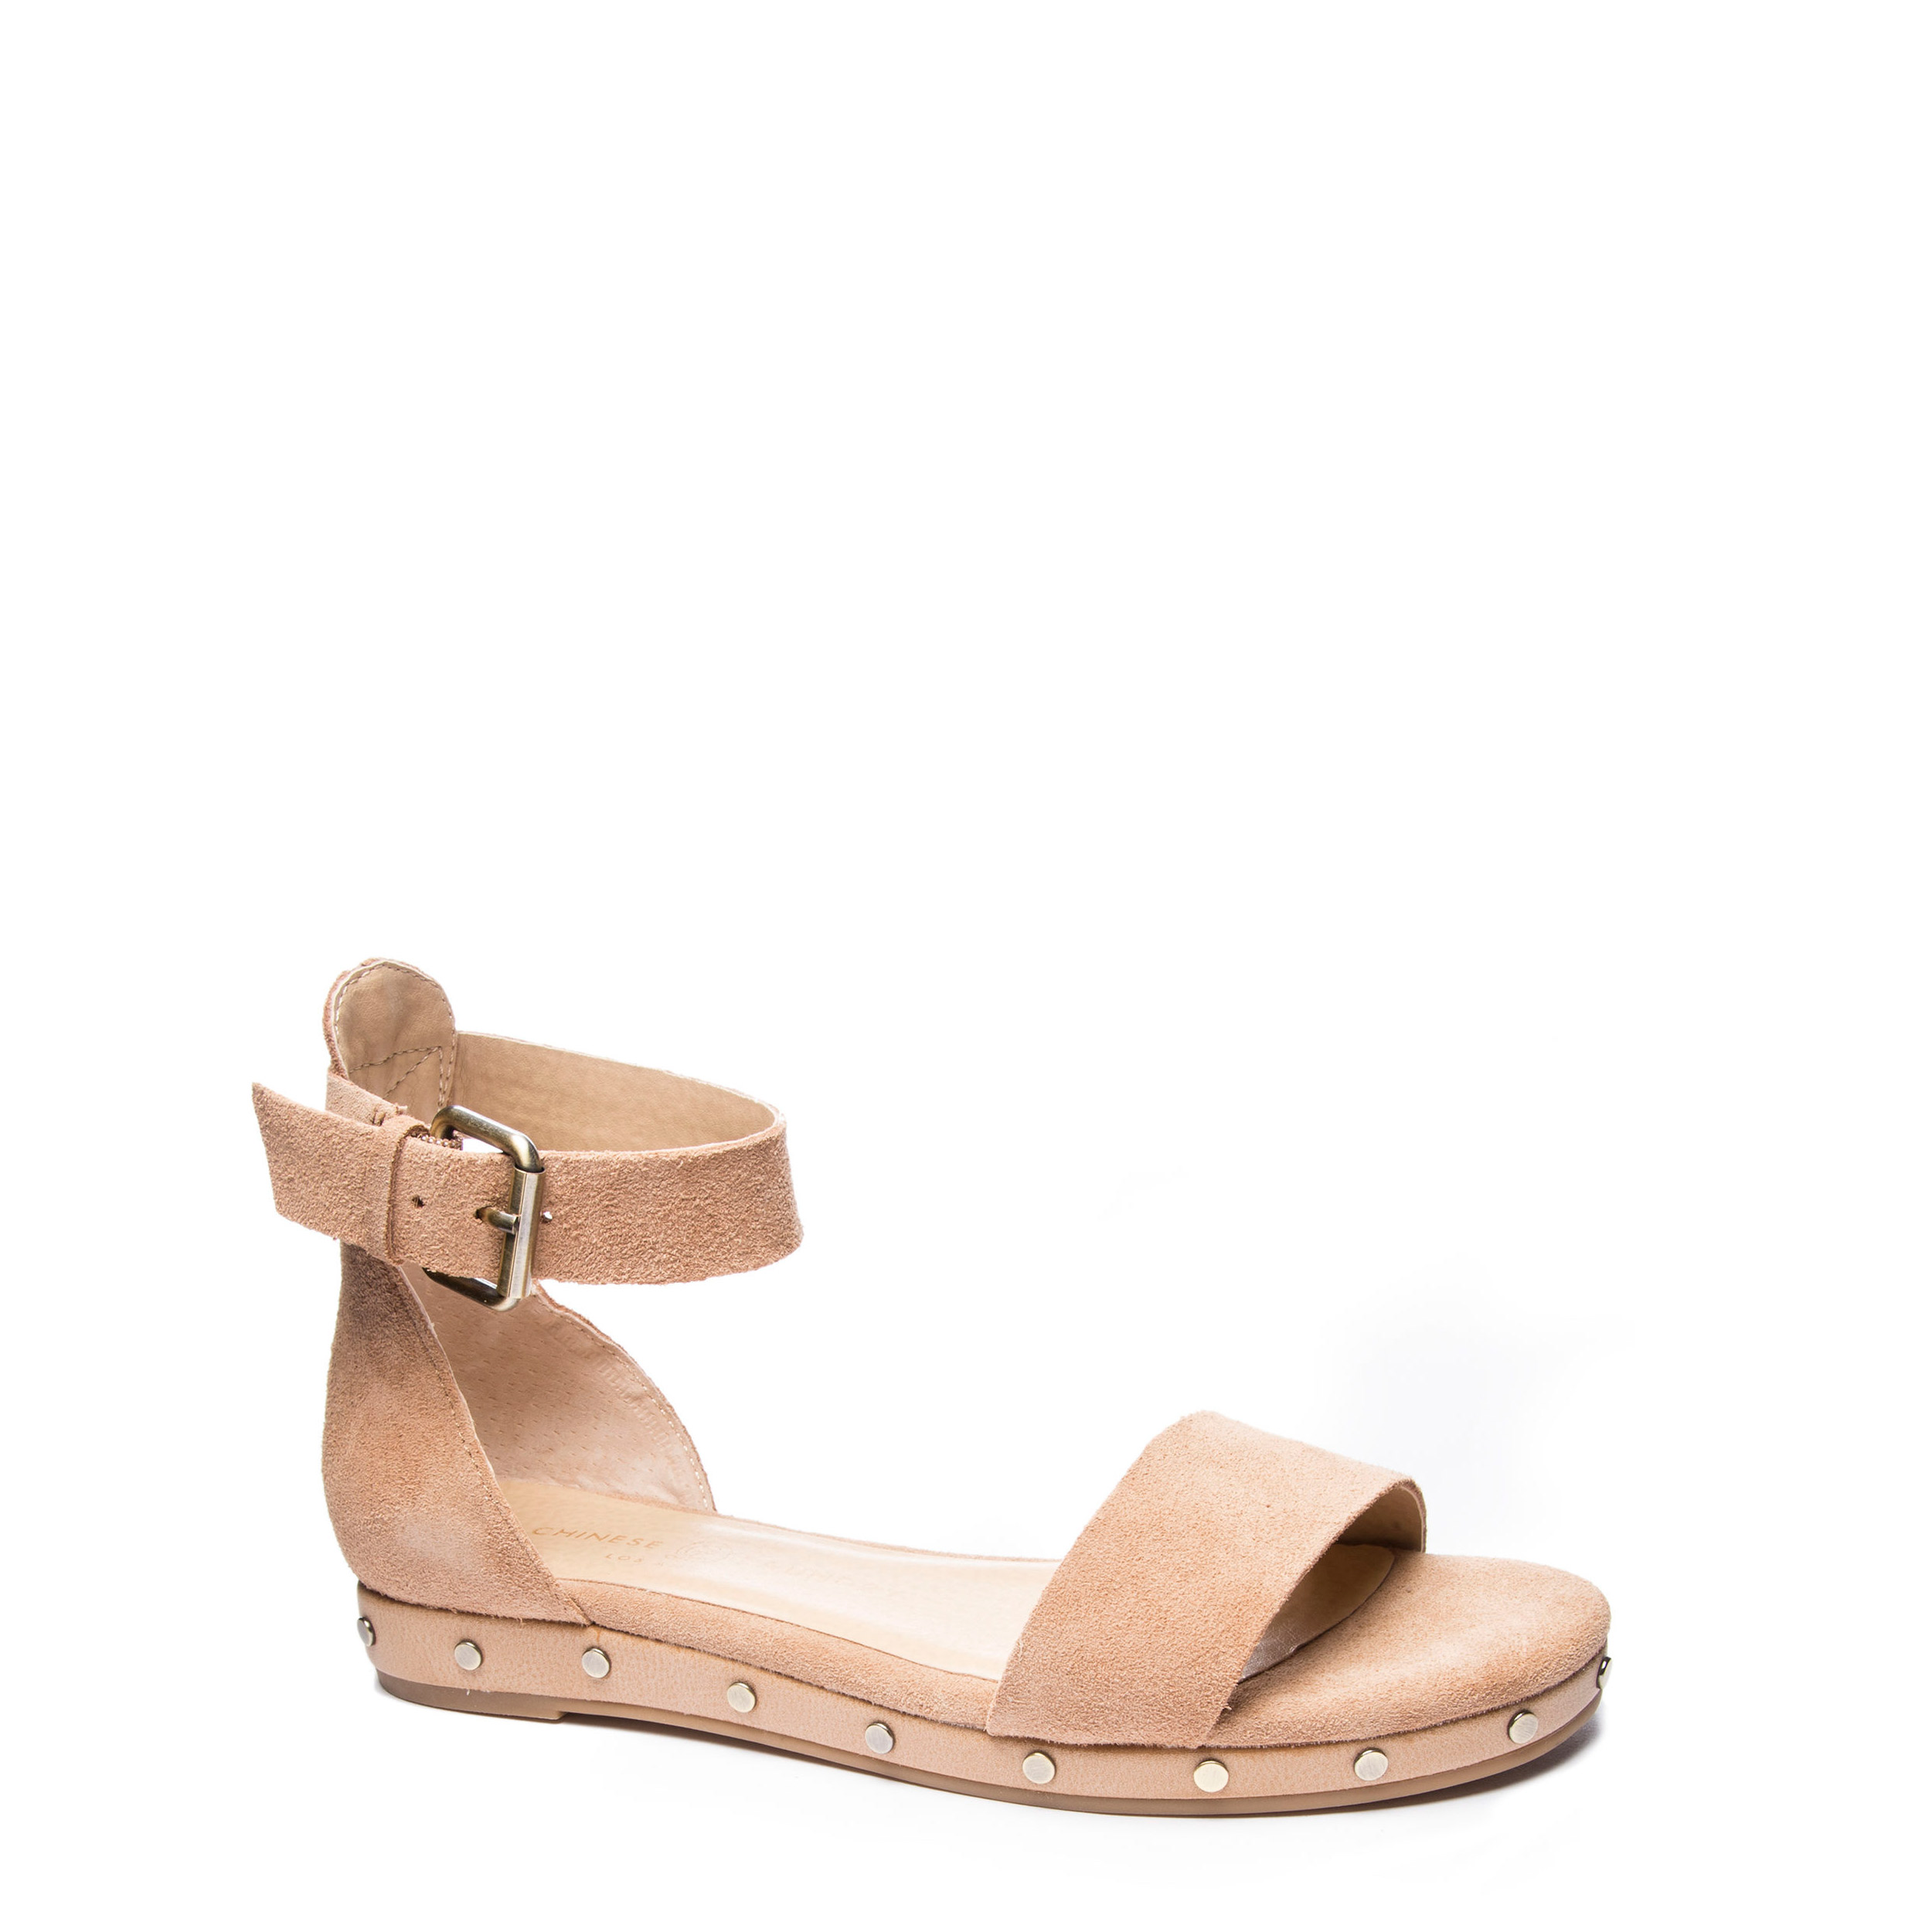 Chinese Laundry Women's Grady Split Suede Dress Sandal in Camel